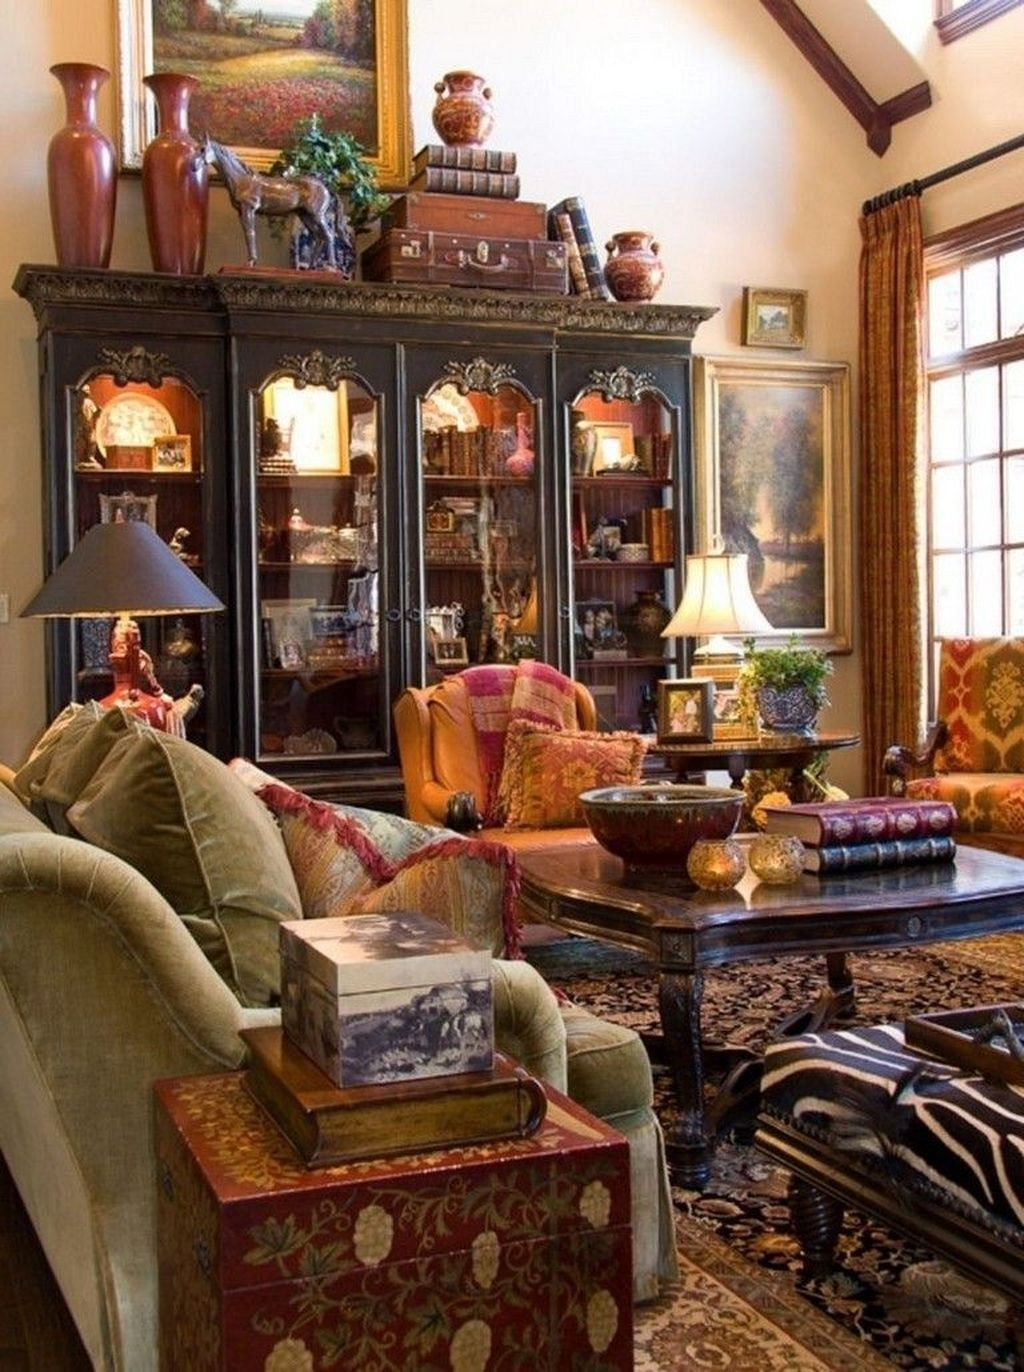 46 Astonishing French Country Living Room Decorating Ideas